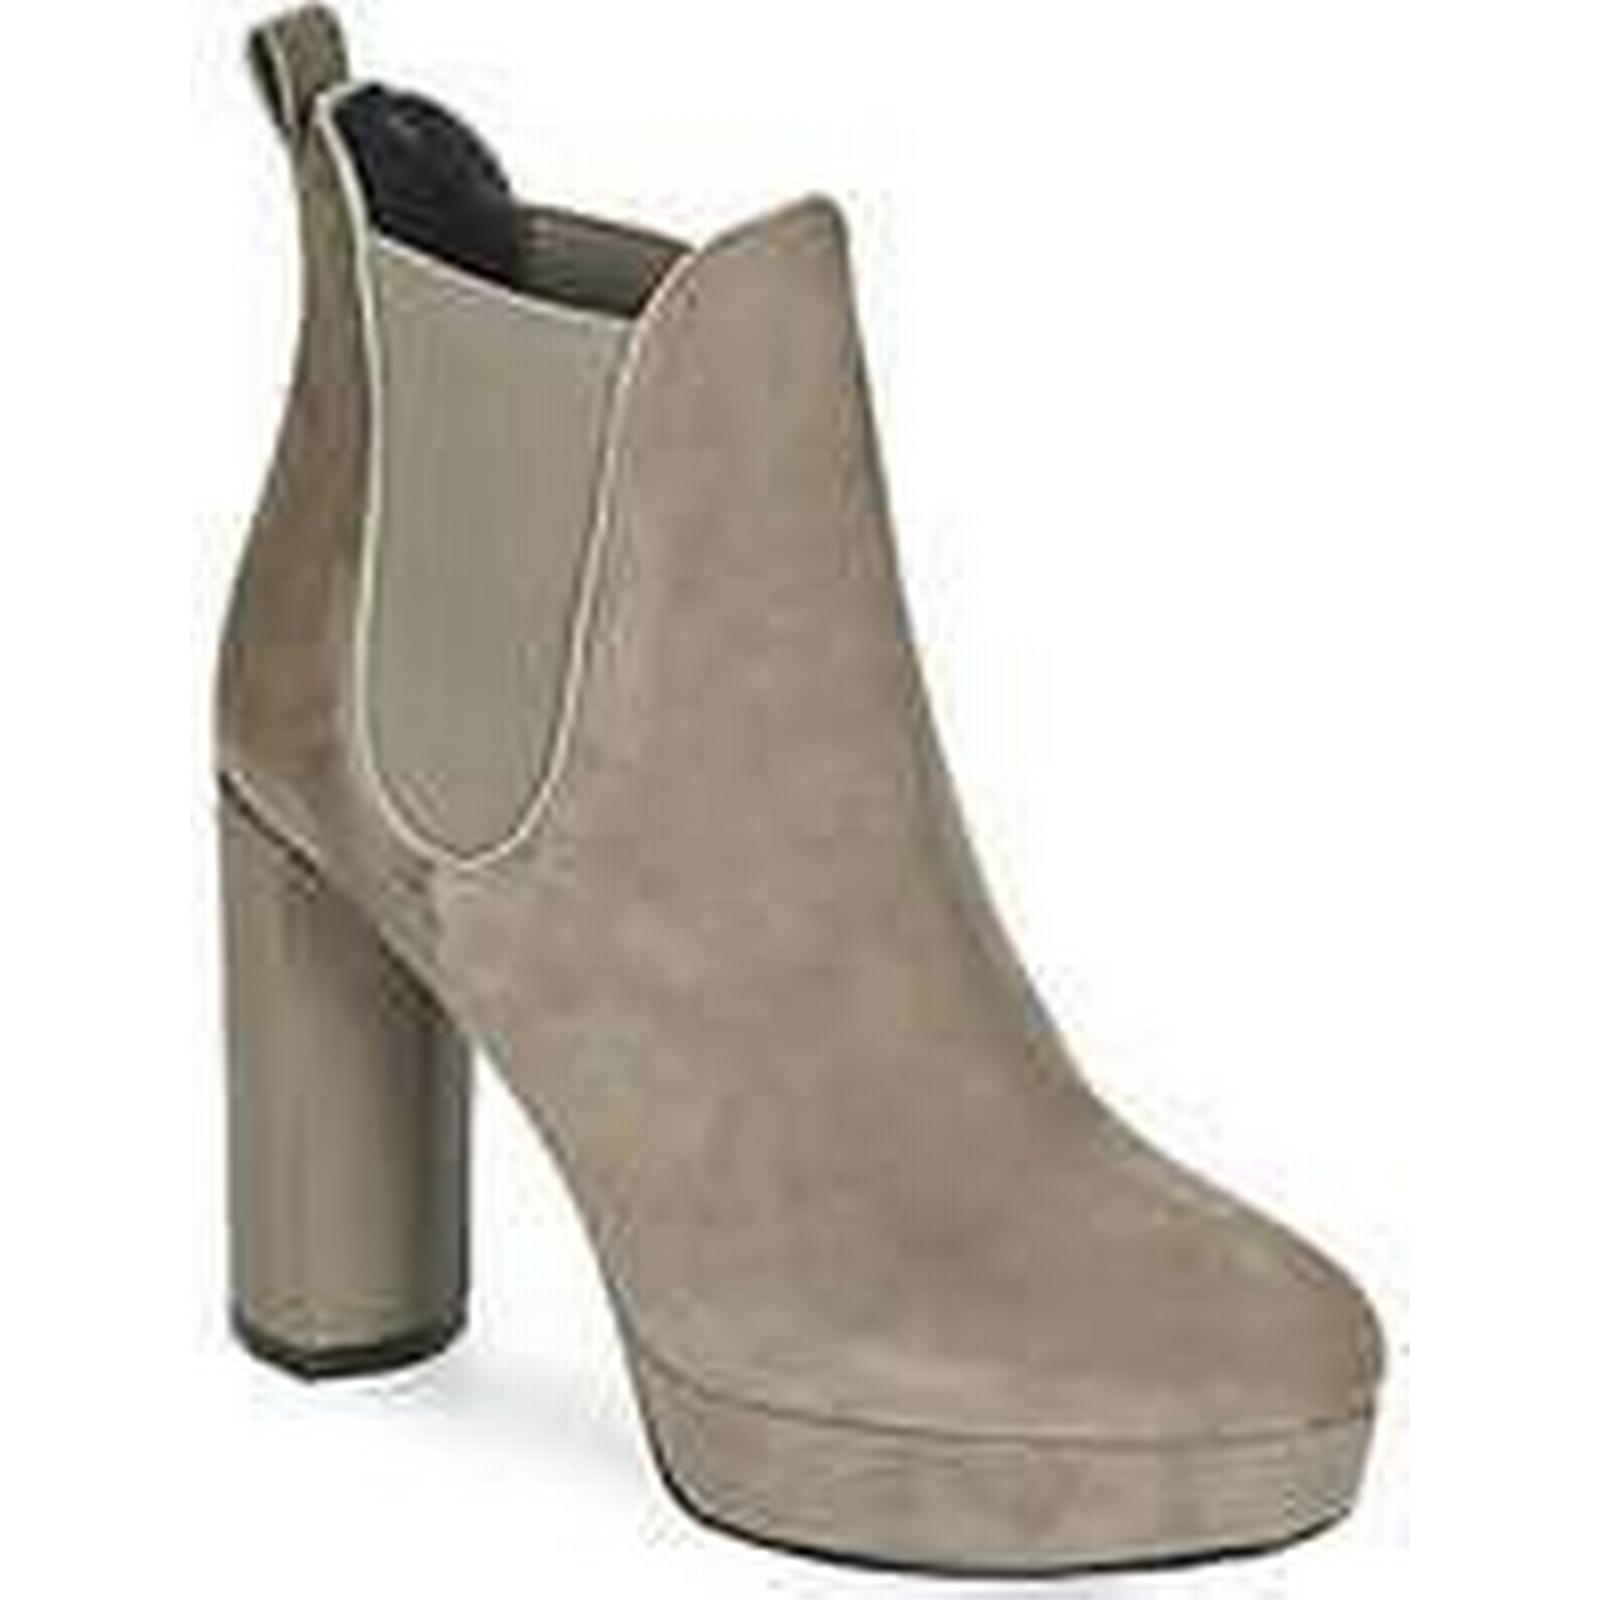 Spartoo.co.uk Luciano Barachini MILI in women's Low Ankle Boots in MILI Beige e59269